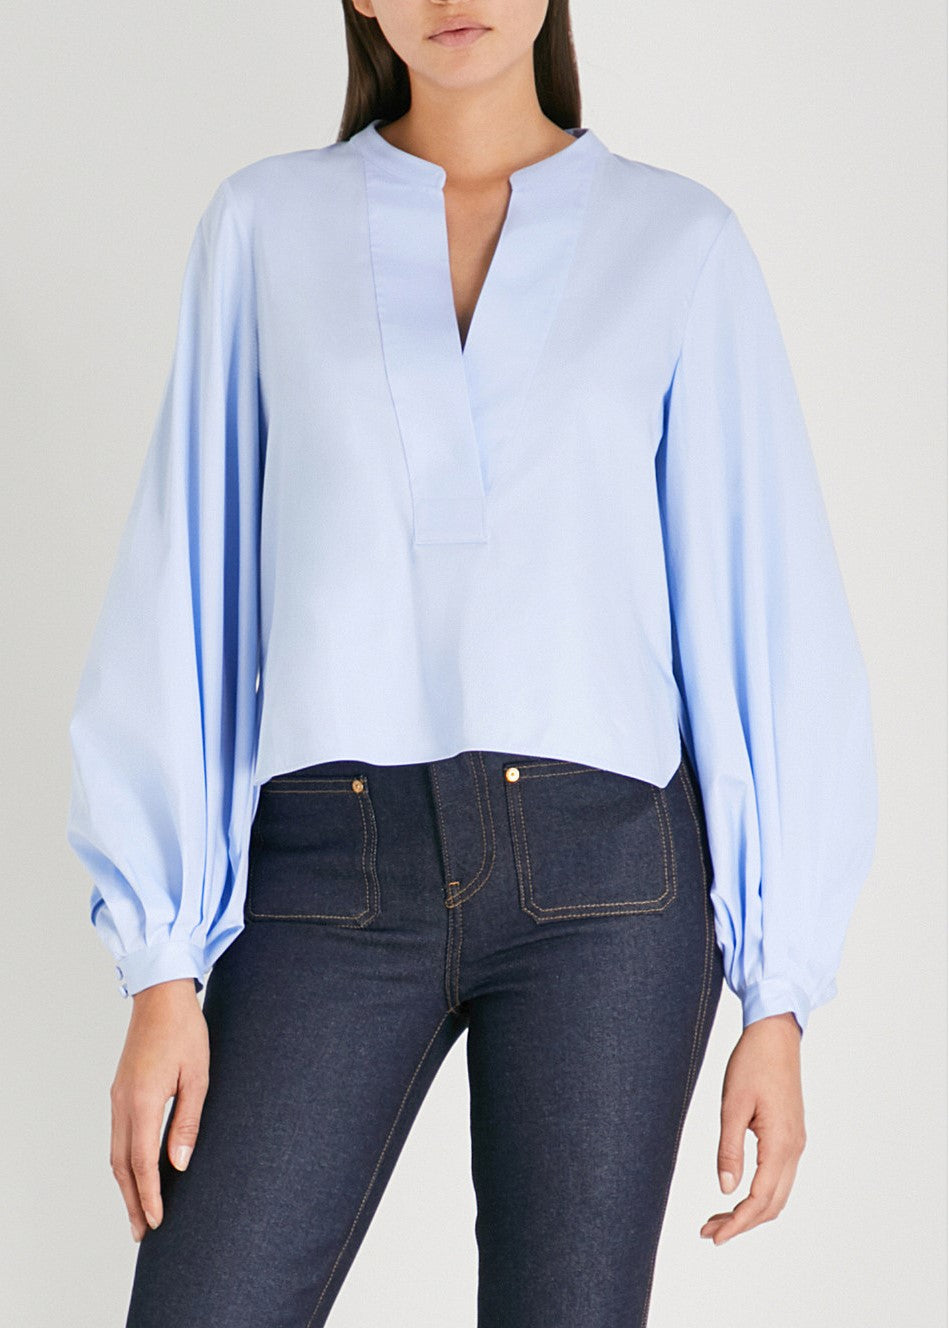 Khaite Suzanna top in sky blue